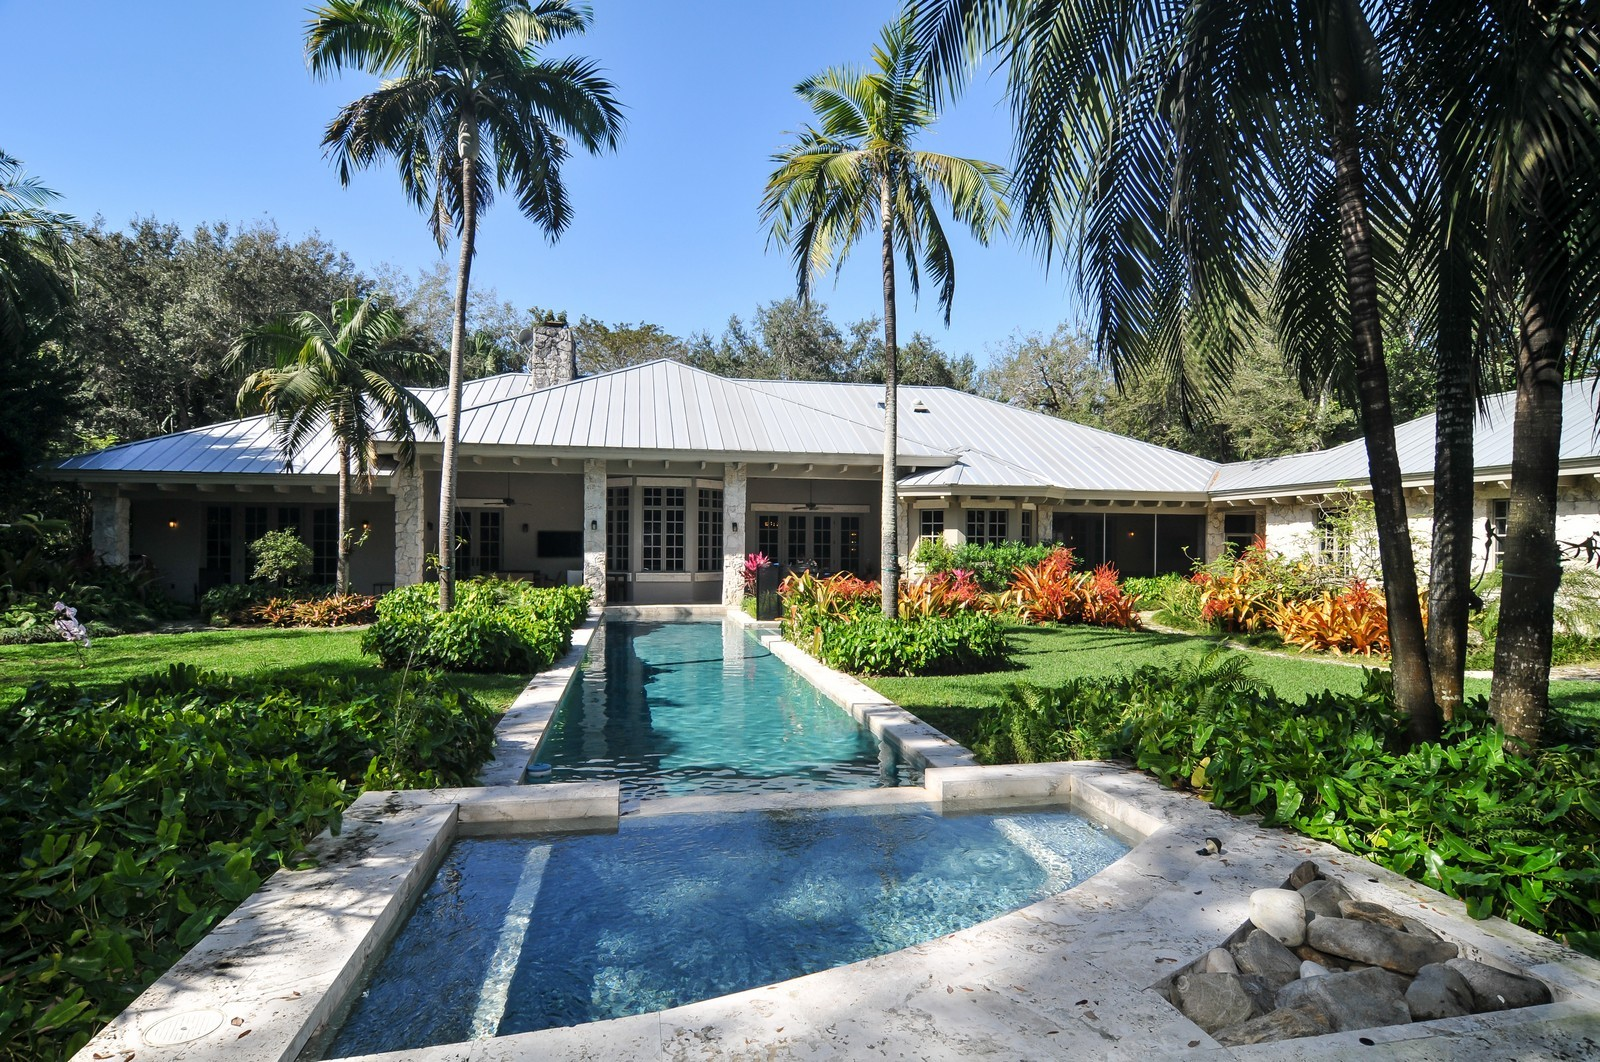 Real Estate Photography - 10225 Coral Creek Rd, Coral Gables, FL, 33156 - Back Yard